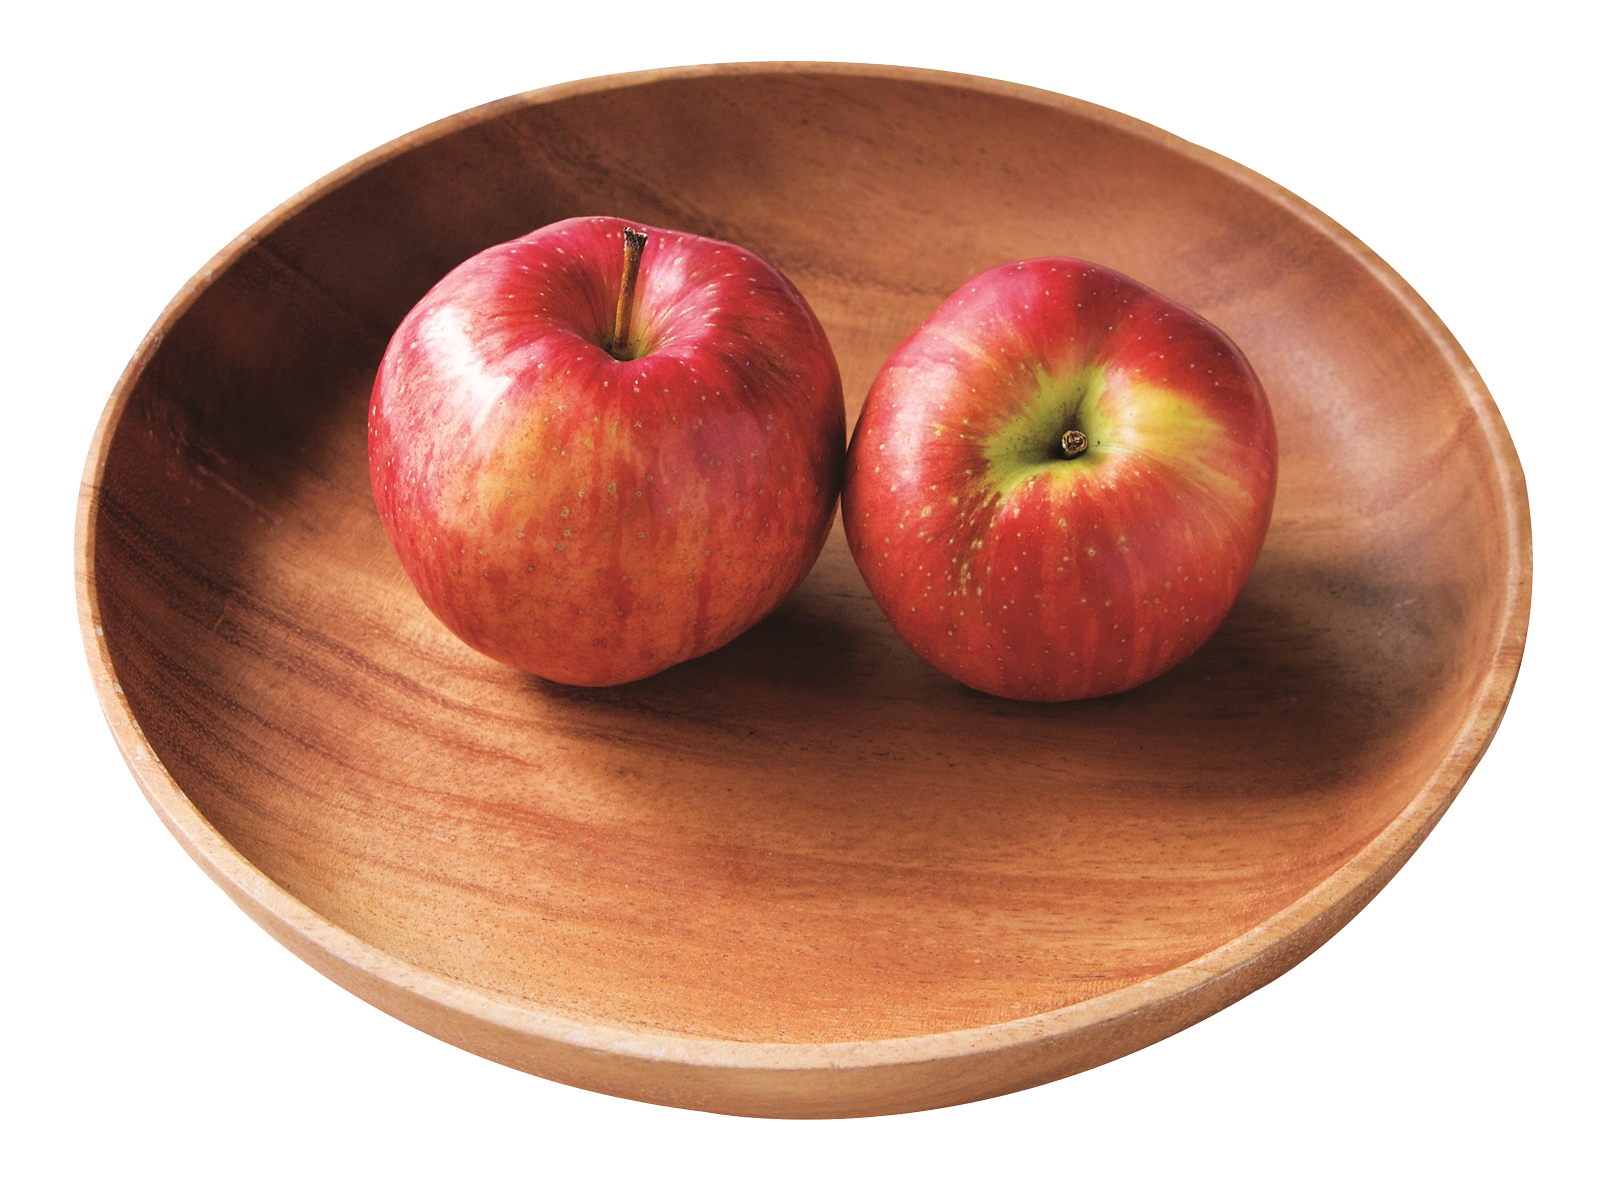 Two Red Apples in Plate PNG Image